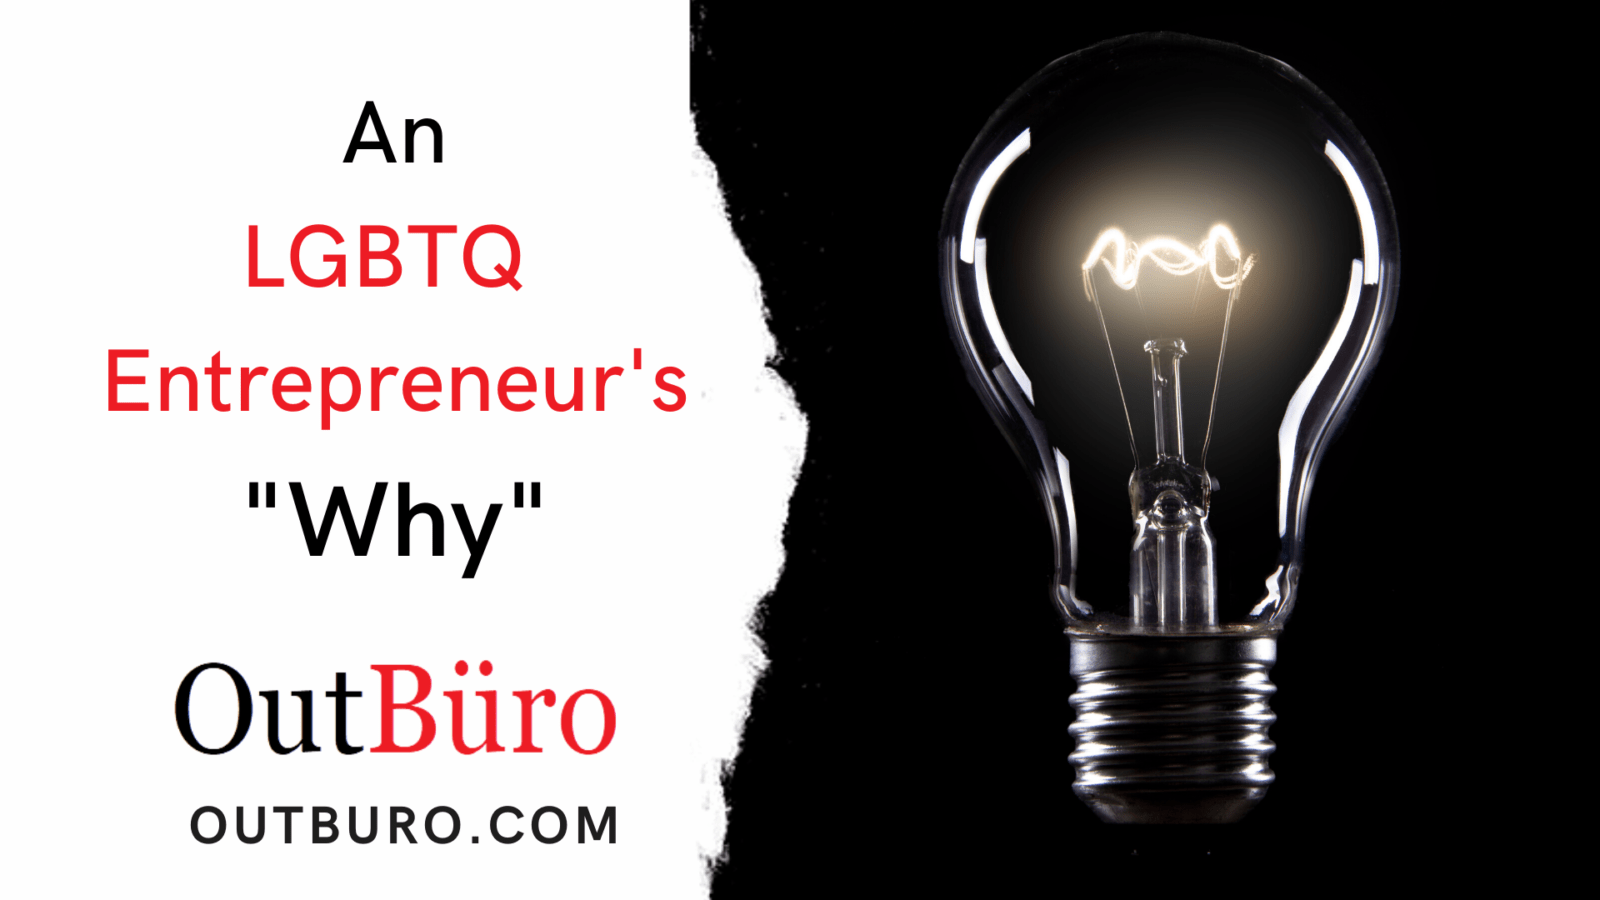 An LGBTQ Entrepreneur's Why - OutBuro - LGBT Startup Gay Business Owner Lesbian Professional Community Online